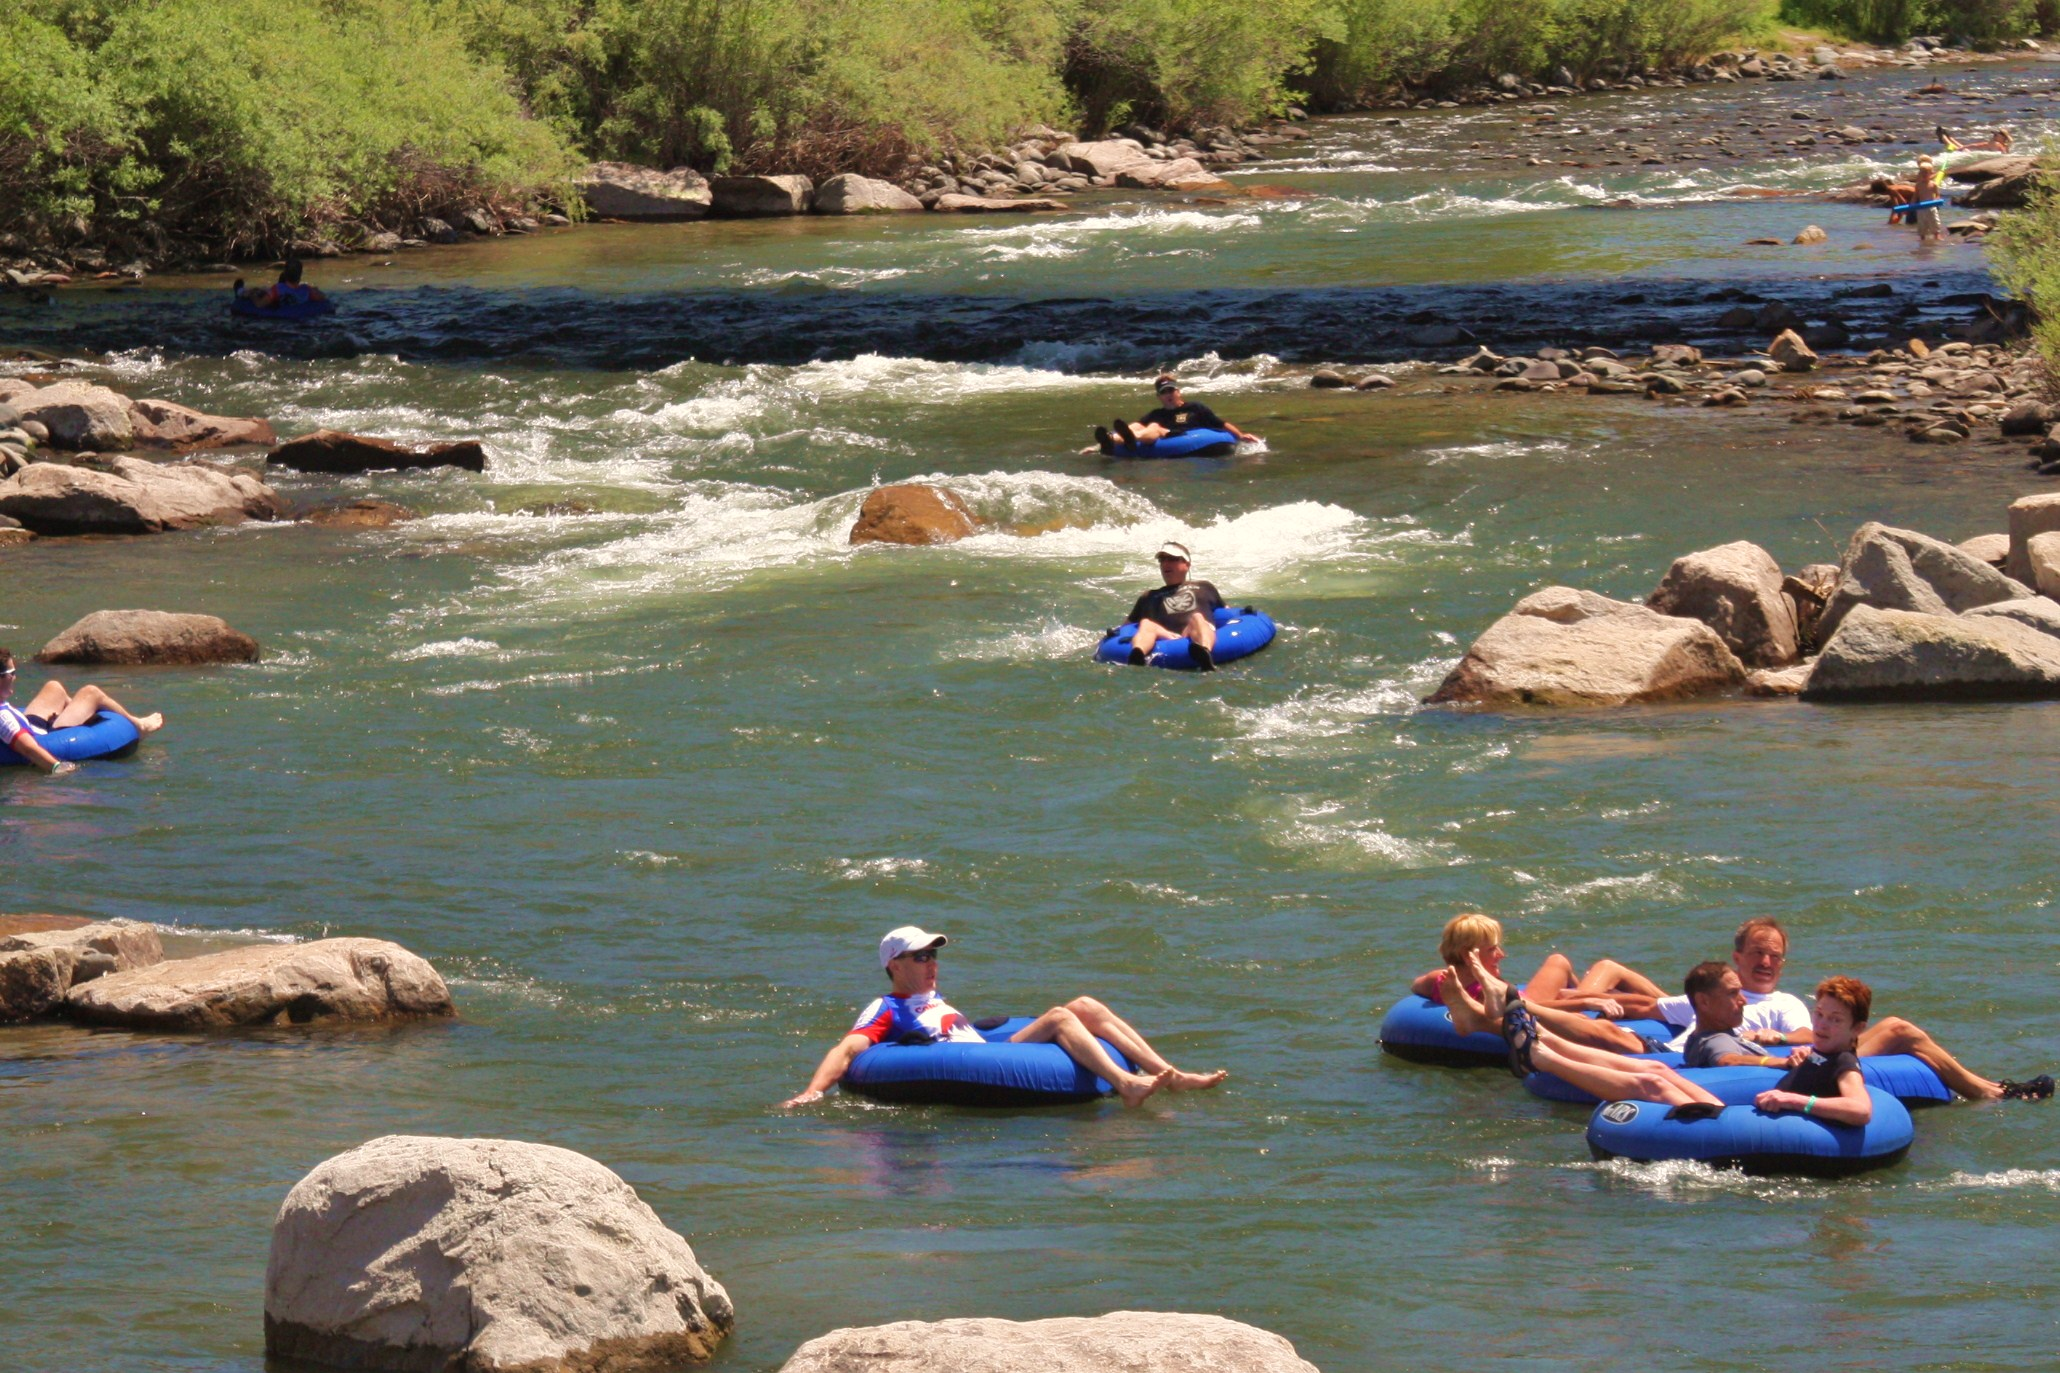 10 Things to Do in Pagosa Springs This Summer